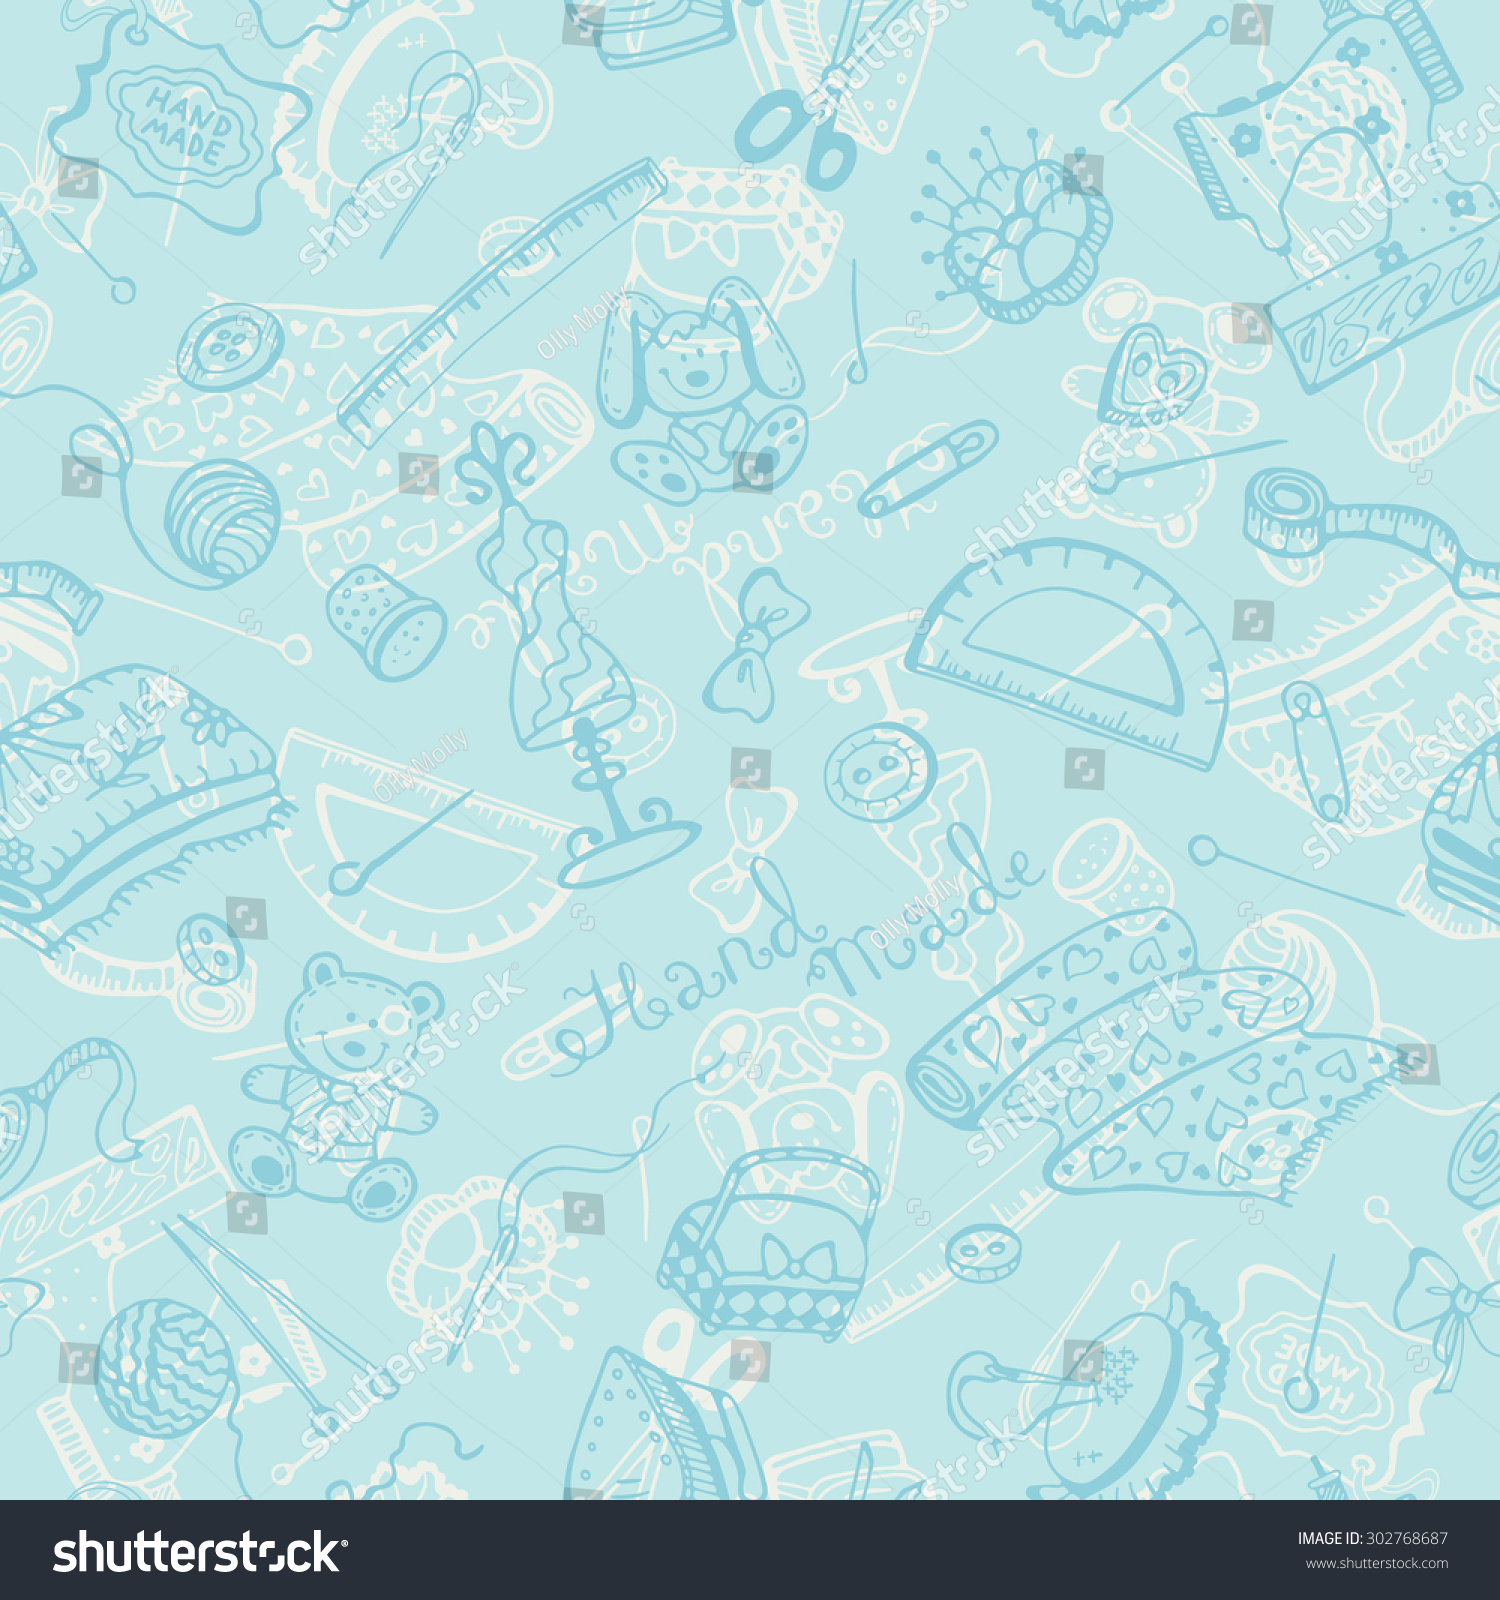 Handmade Items Background Craft Tools Seamless Stock Vector Royalty